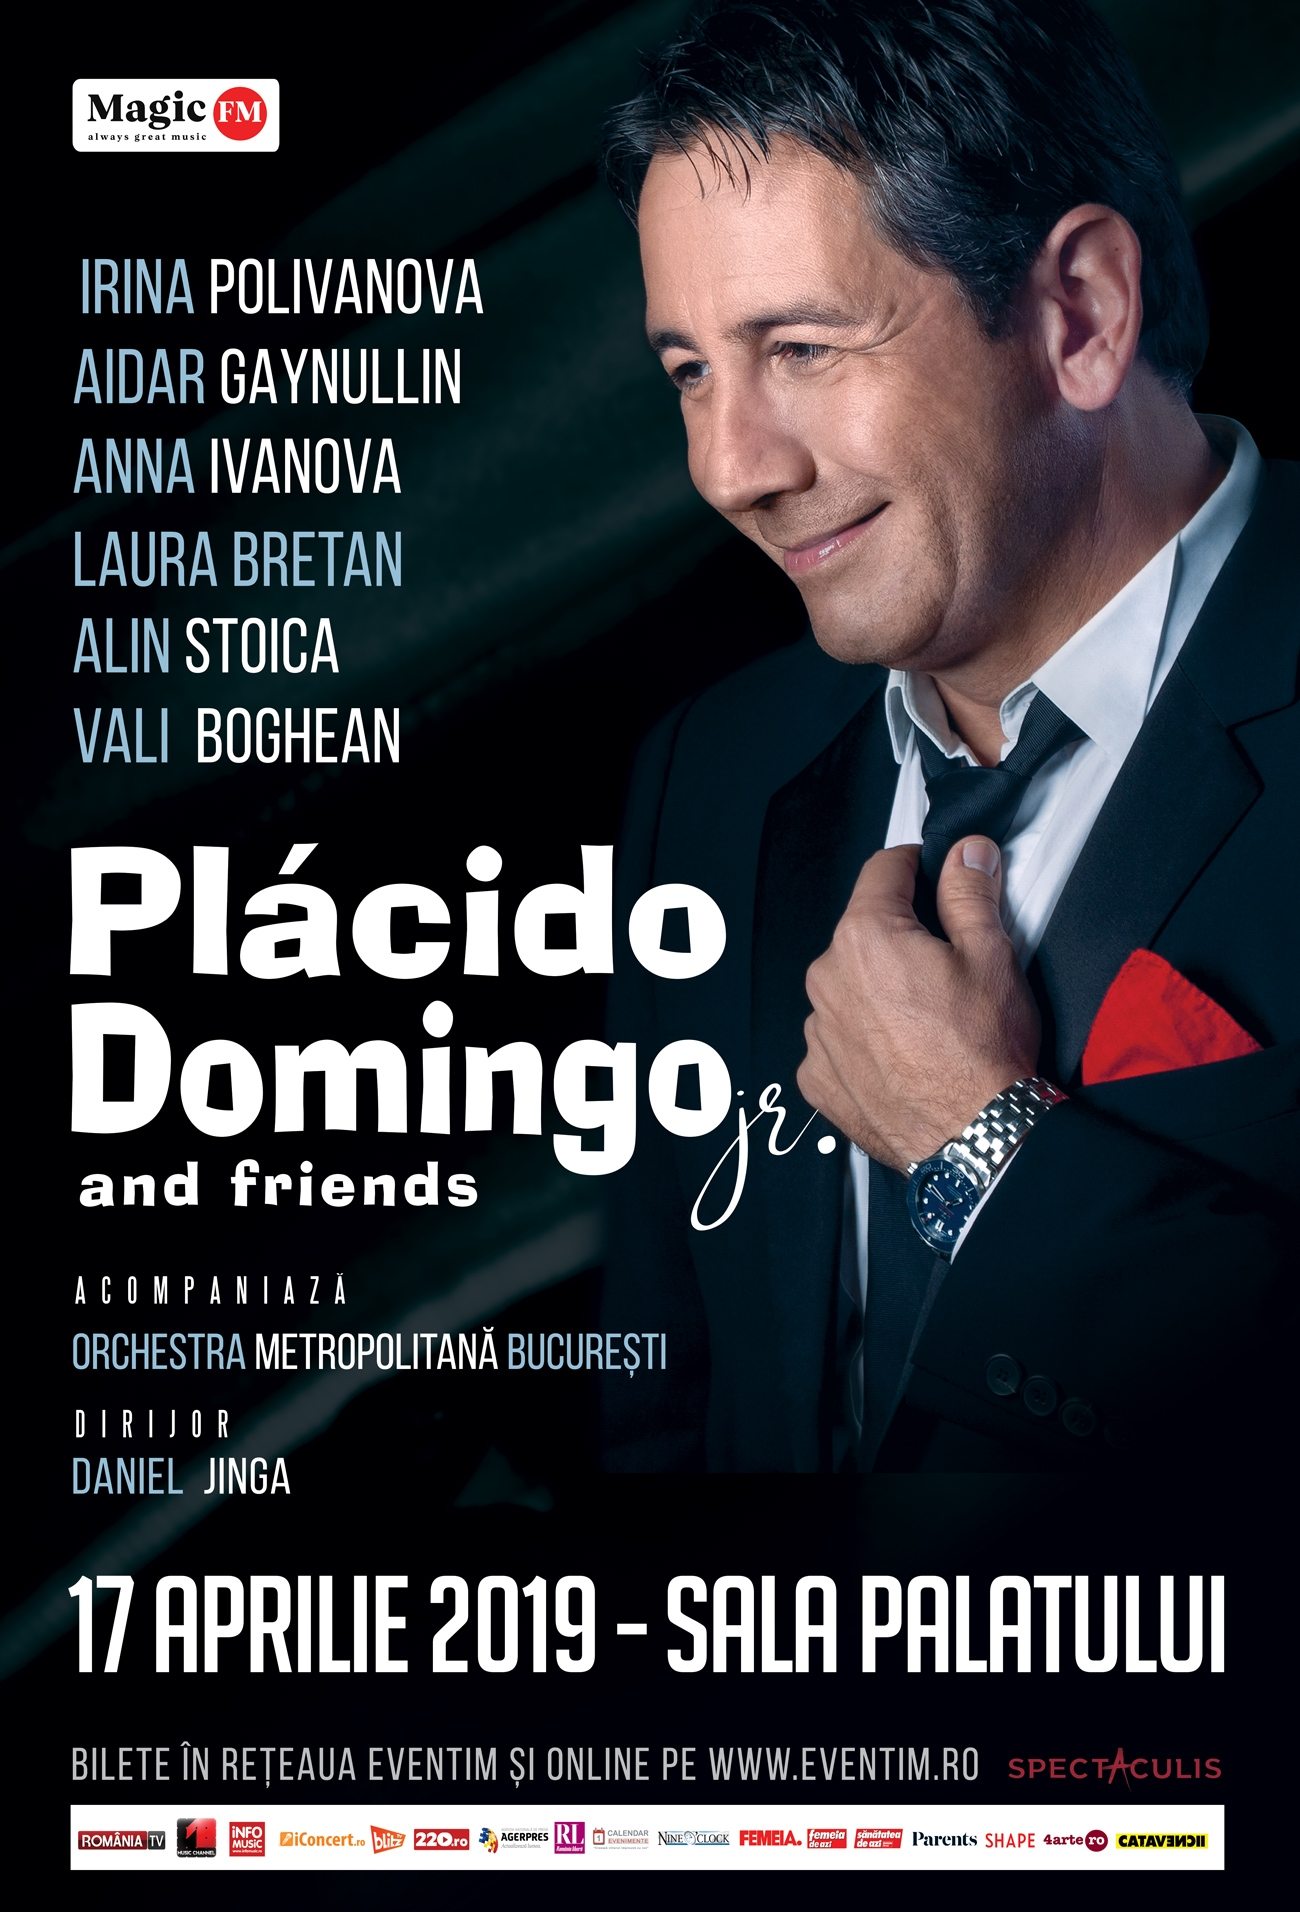 Placido-Domingo-jr-Poster